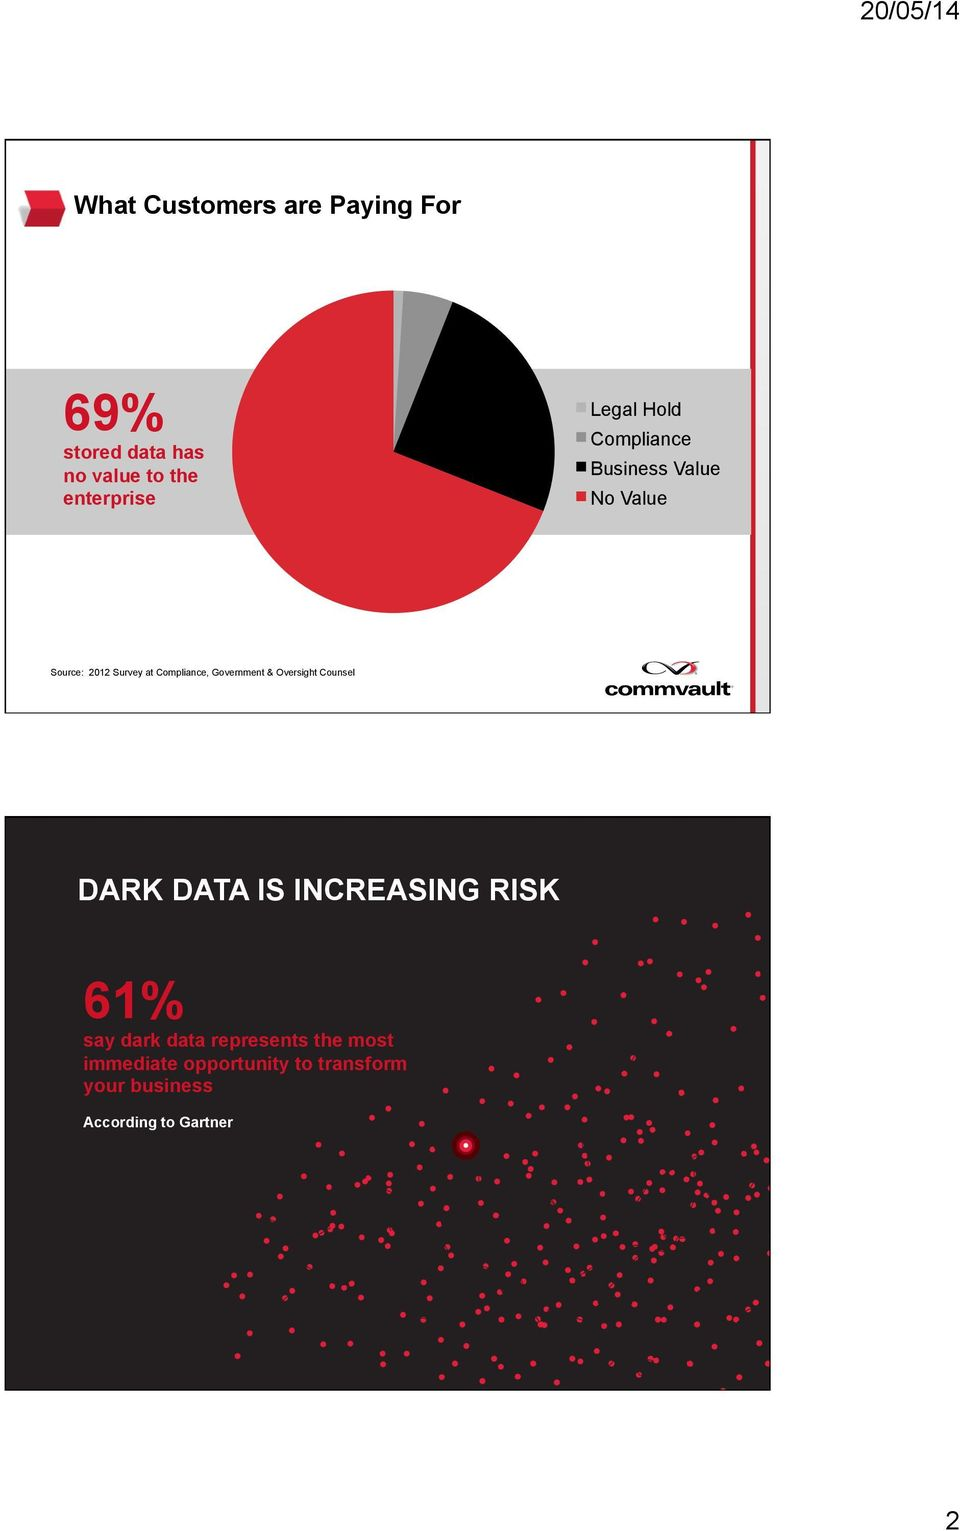 Counsel DARK DATA IS INCREASING RISK 61% say dark data represents the most immediate opportunity